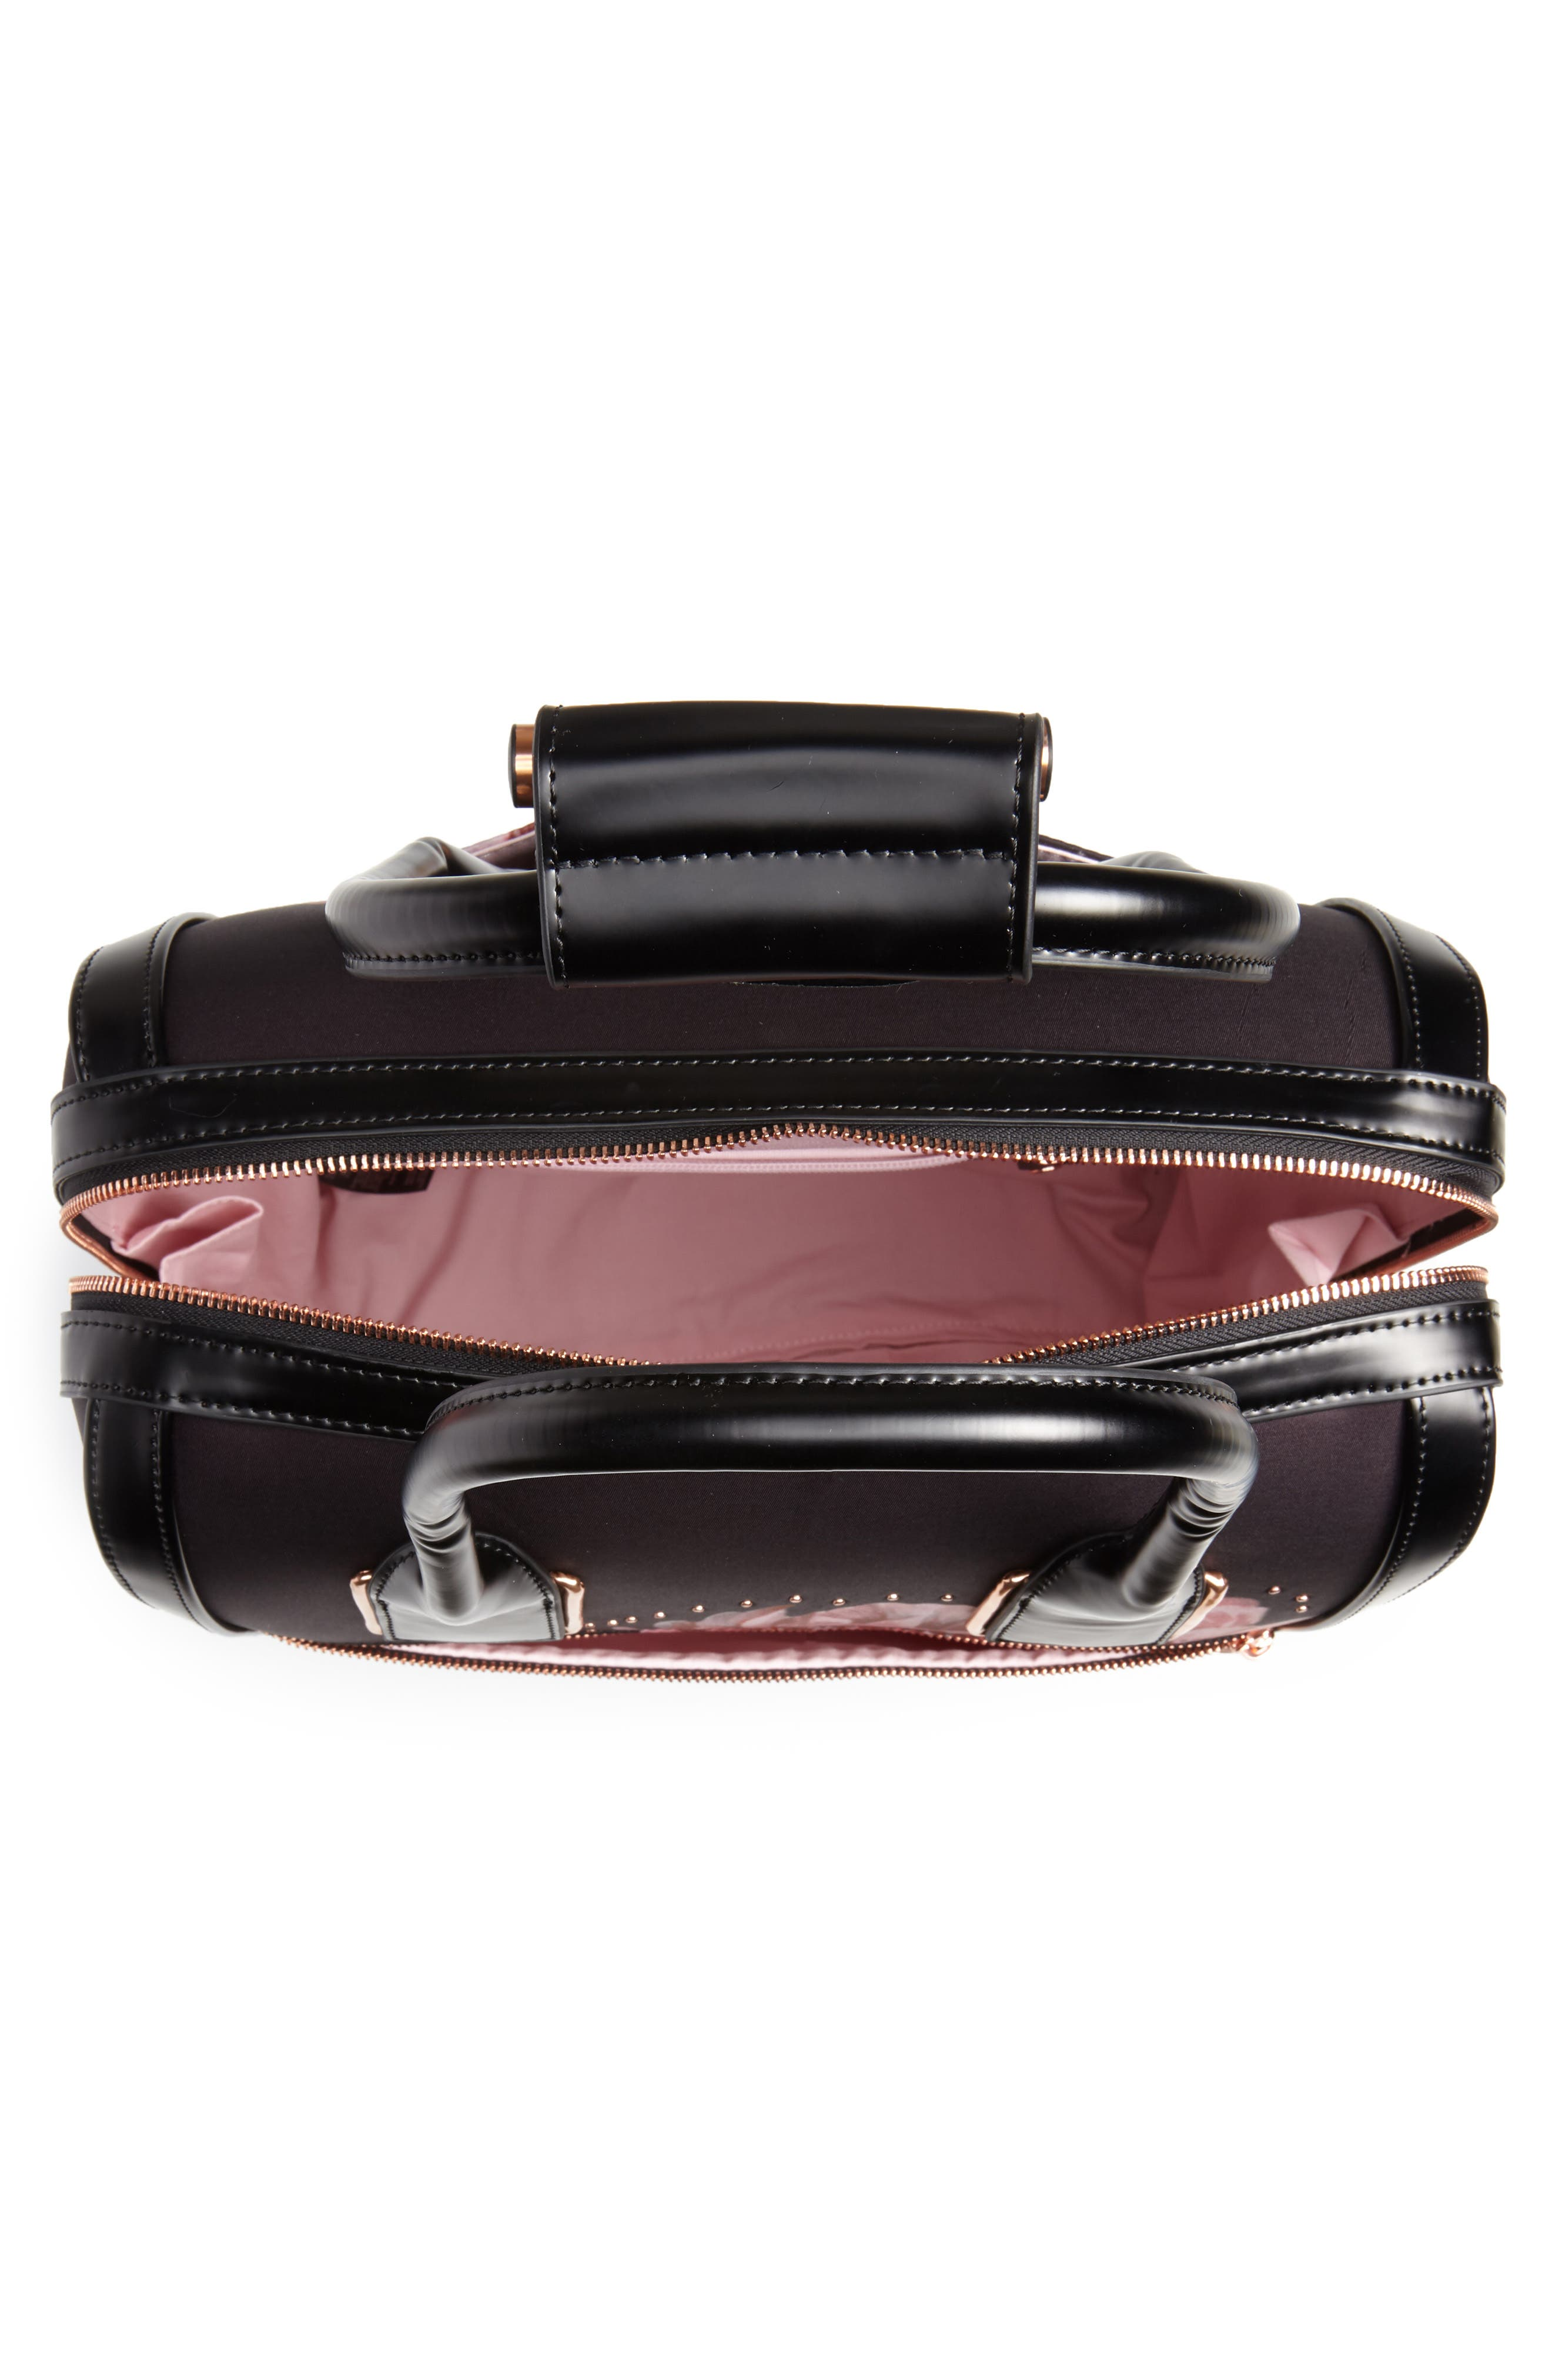 Tranquility Rolling Faux Leather Travel Bag,                             Alternate thumbnail 2, color,                             Black